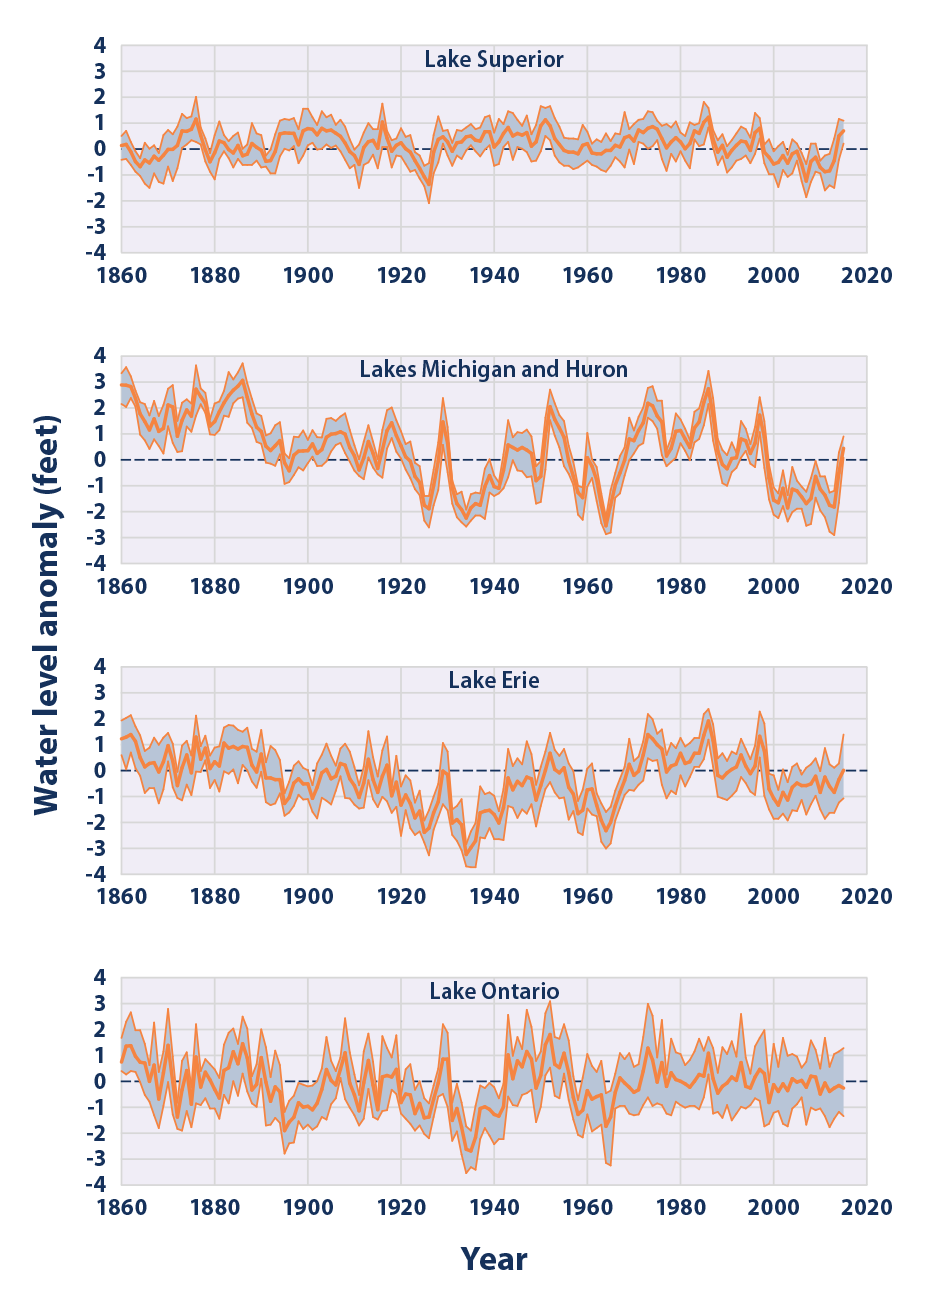 Line graphs showing water levels in each of the Great Lakes from 1860 to 2015.